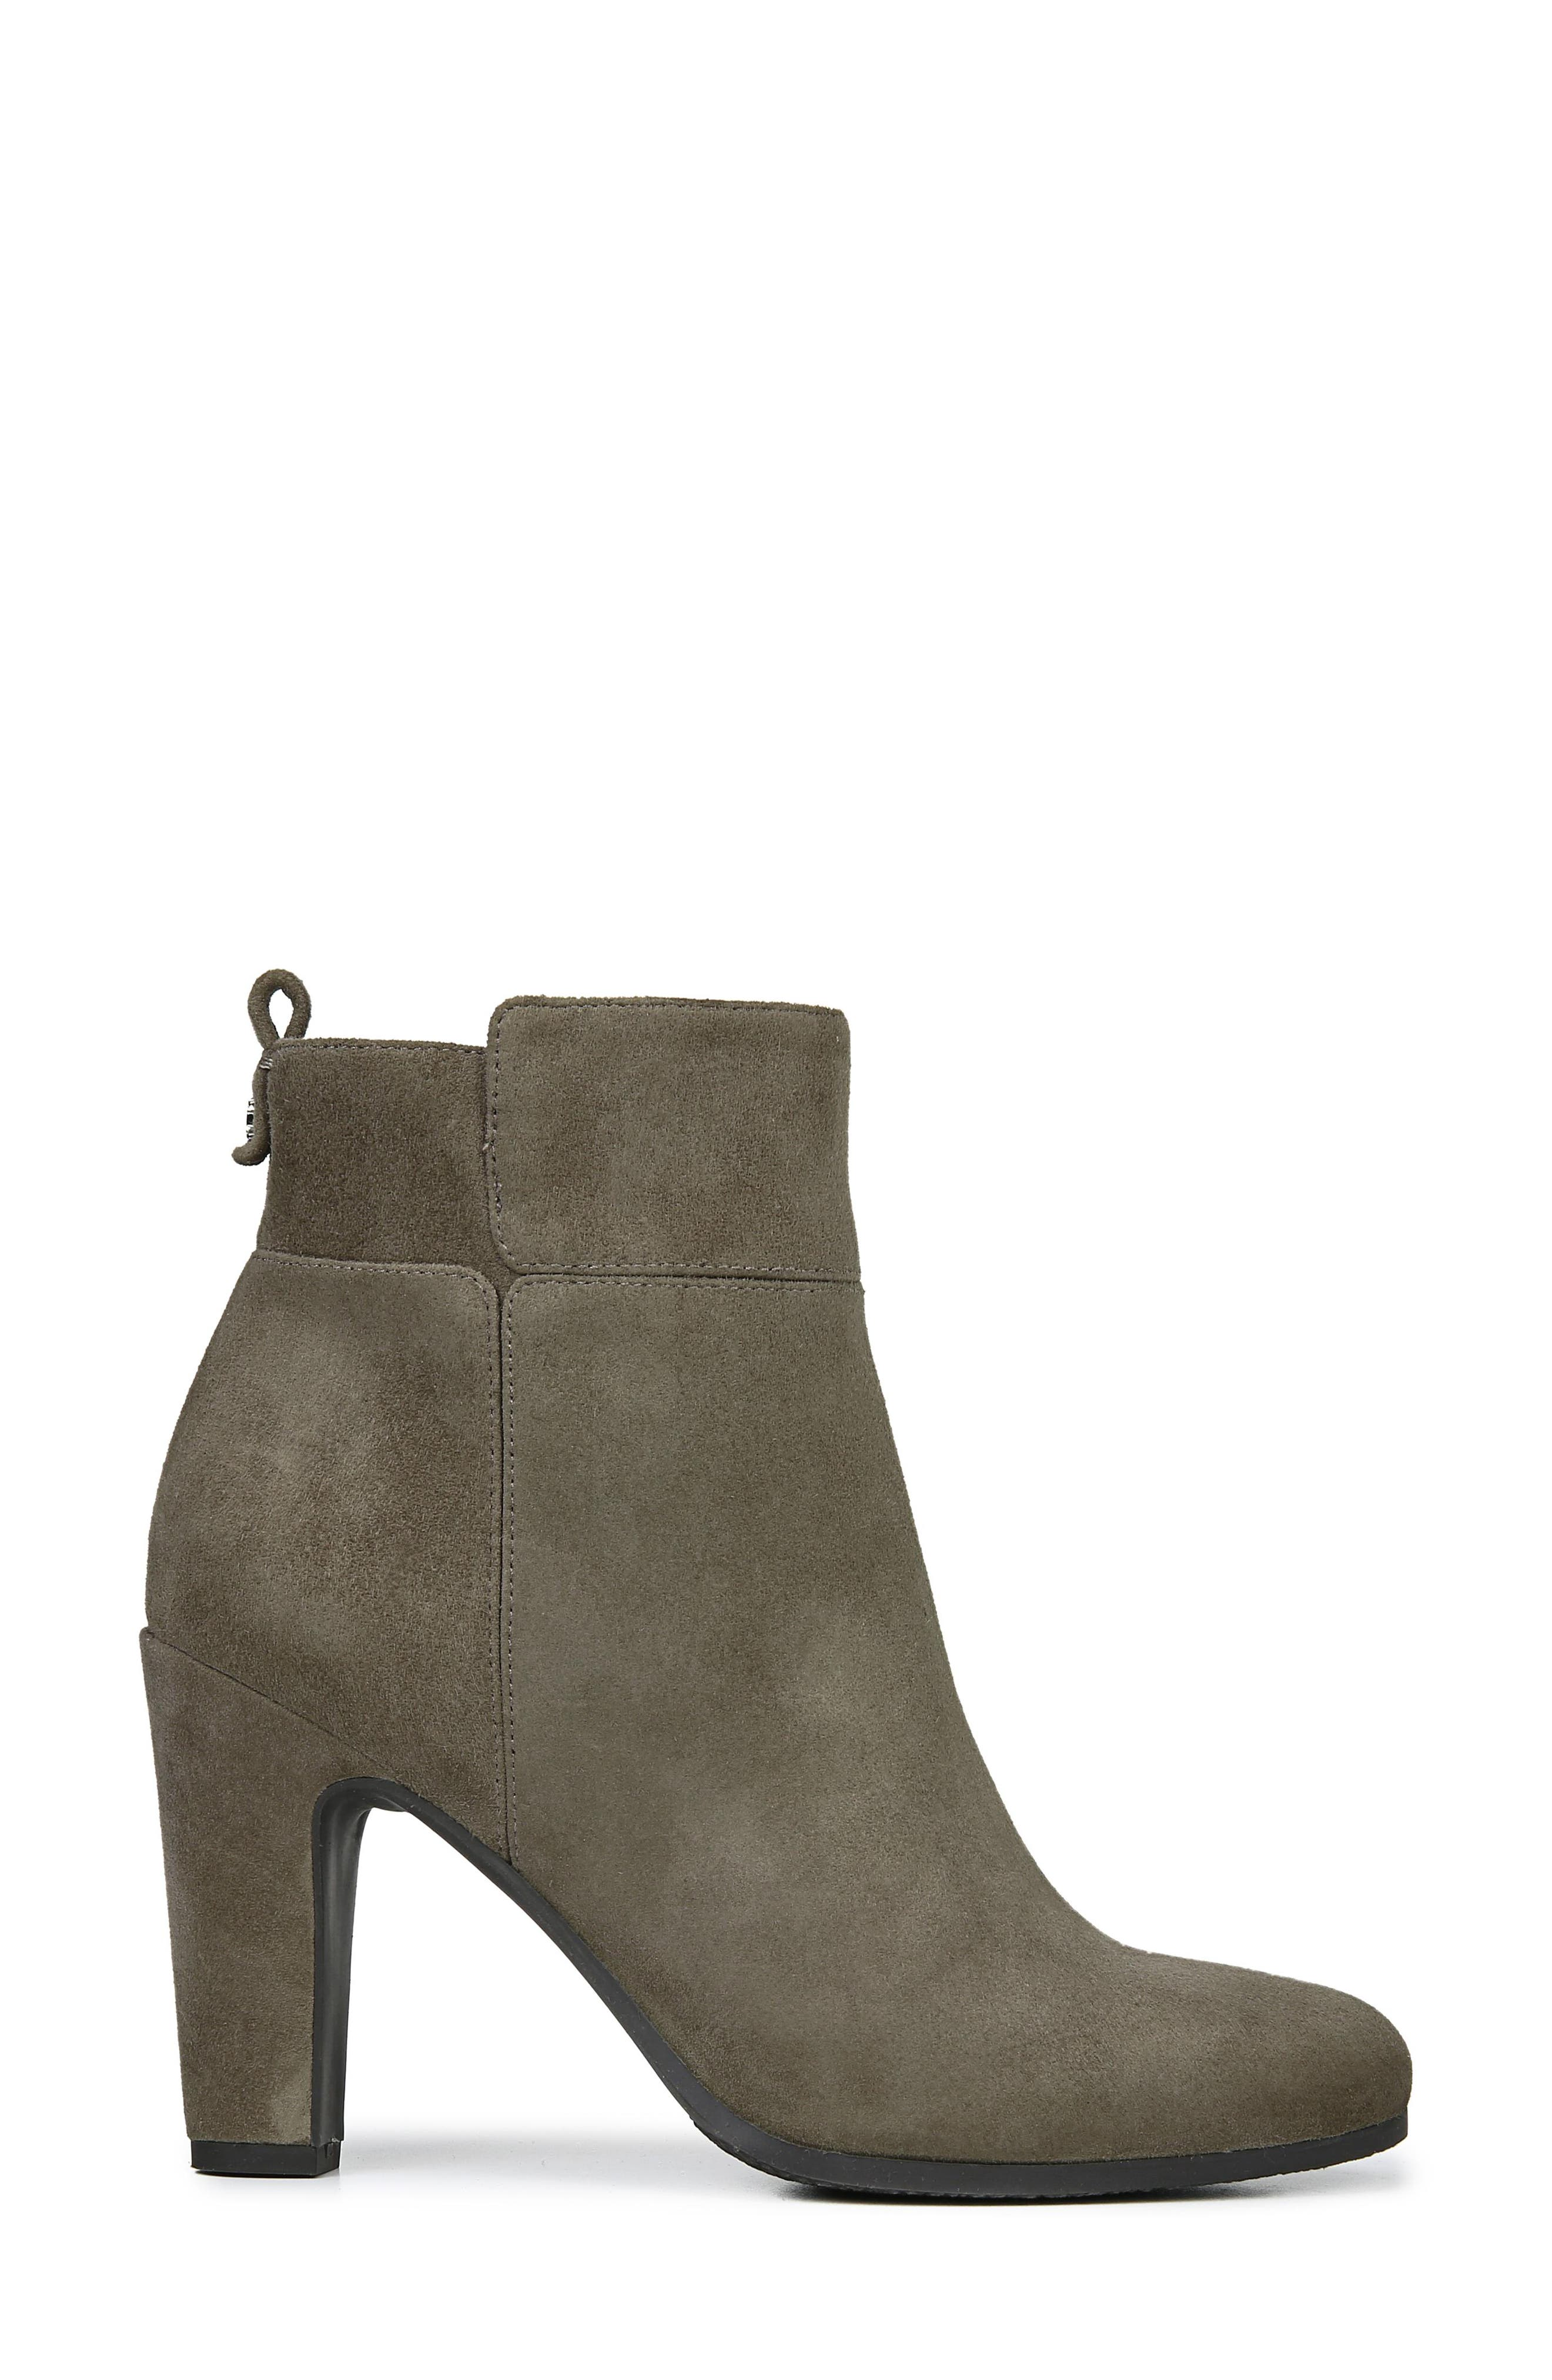 Sianna Bootie,                             Alternate thumbnail 3, color,                             FLINT GREY SUEDE